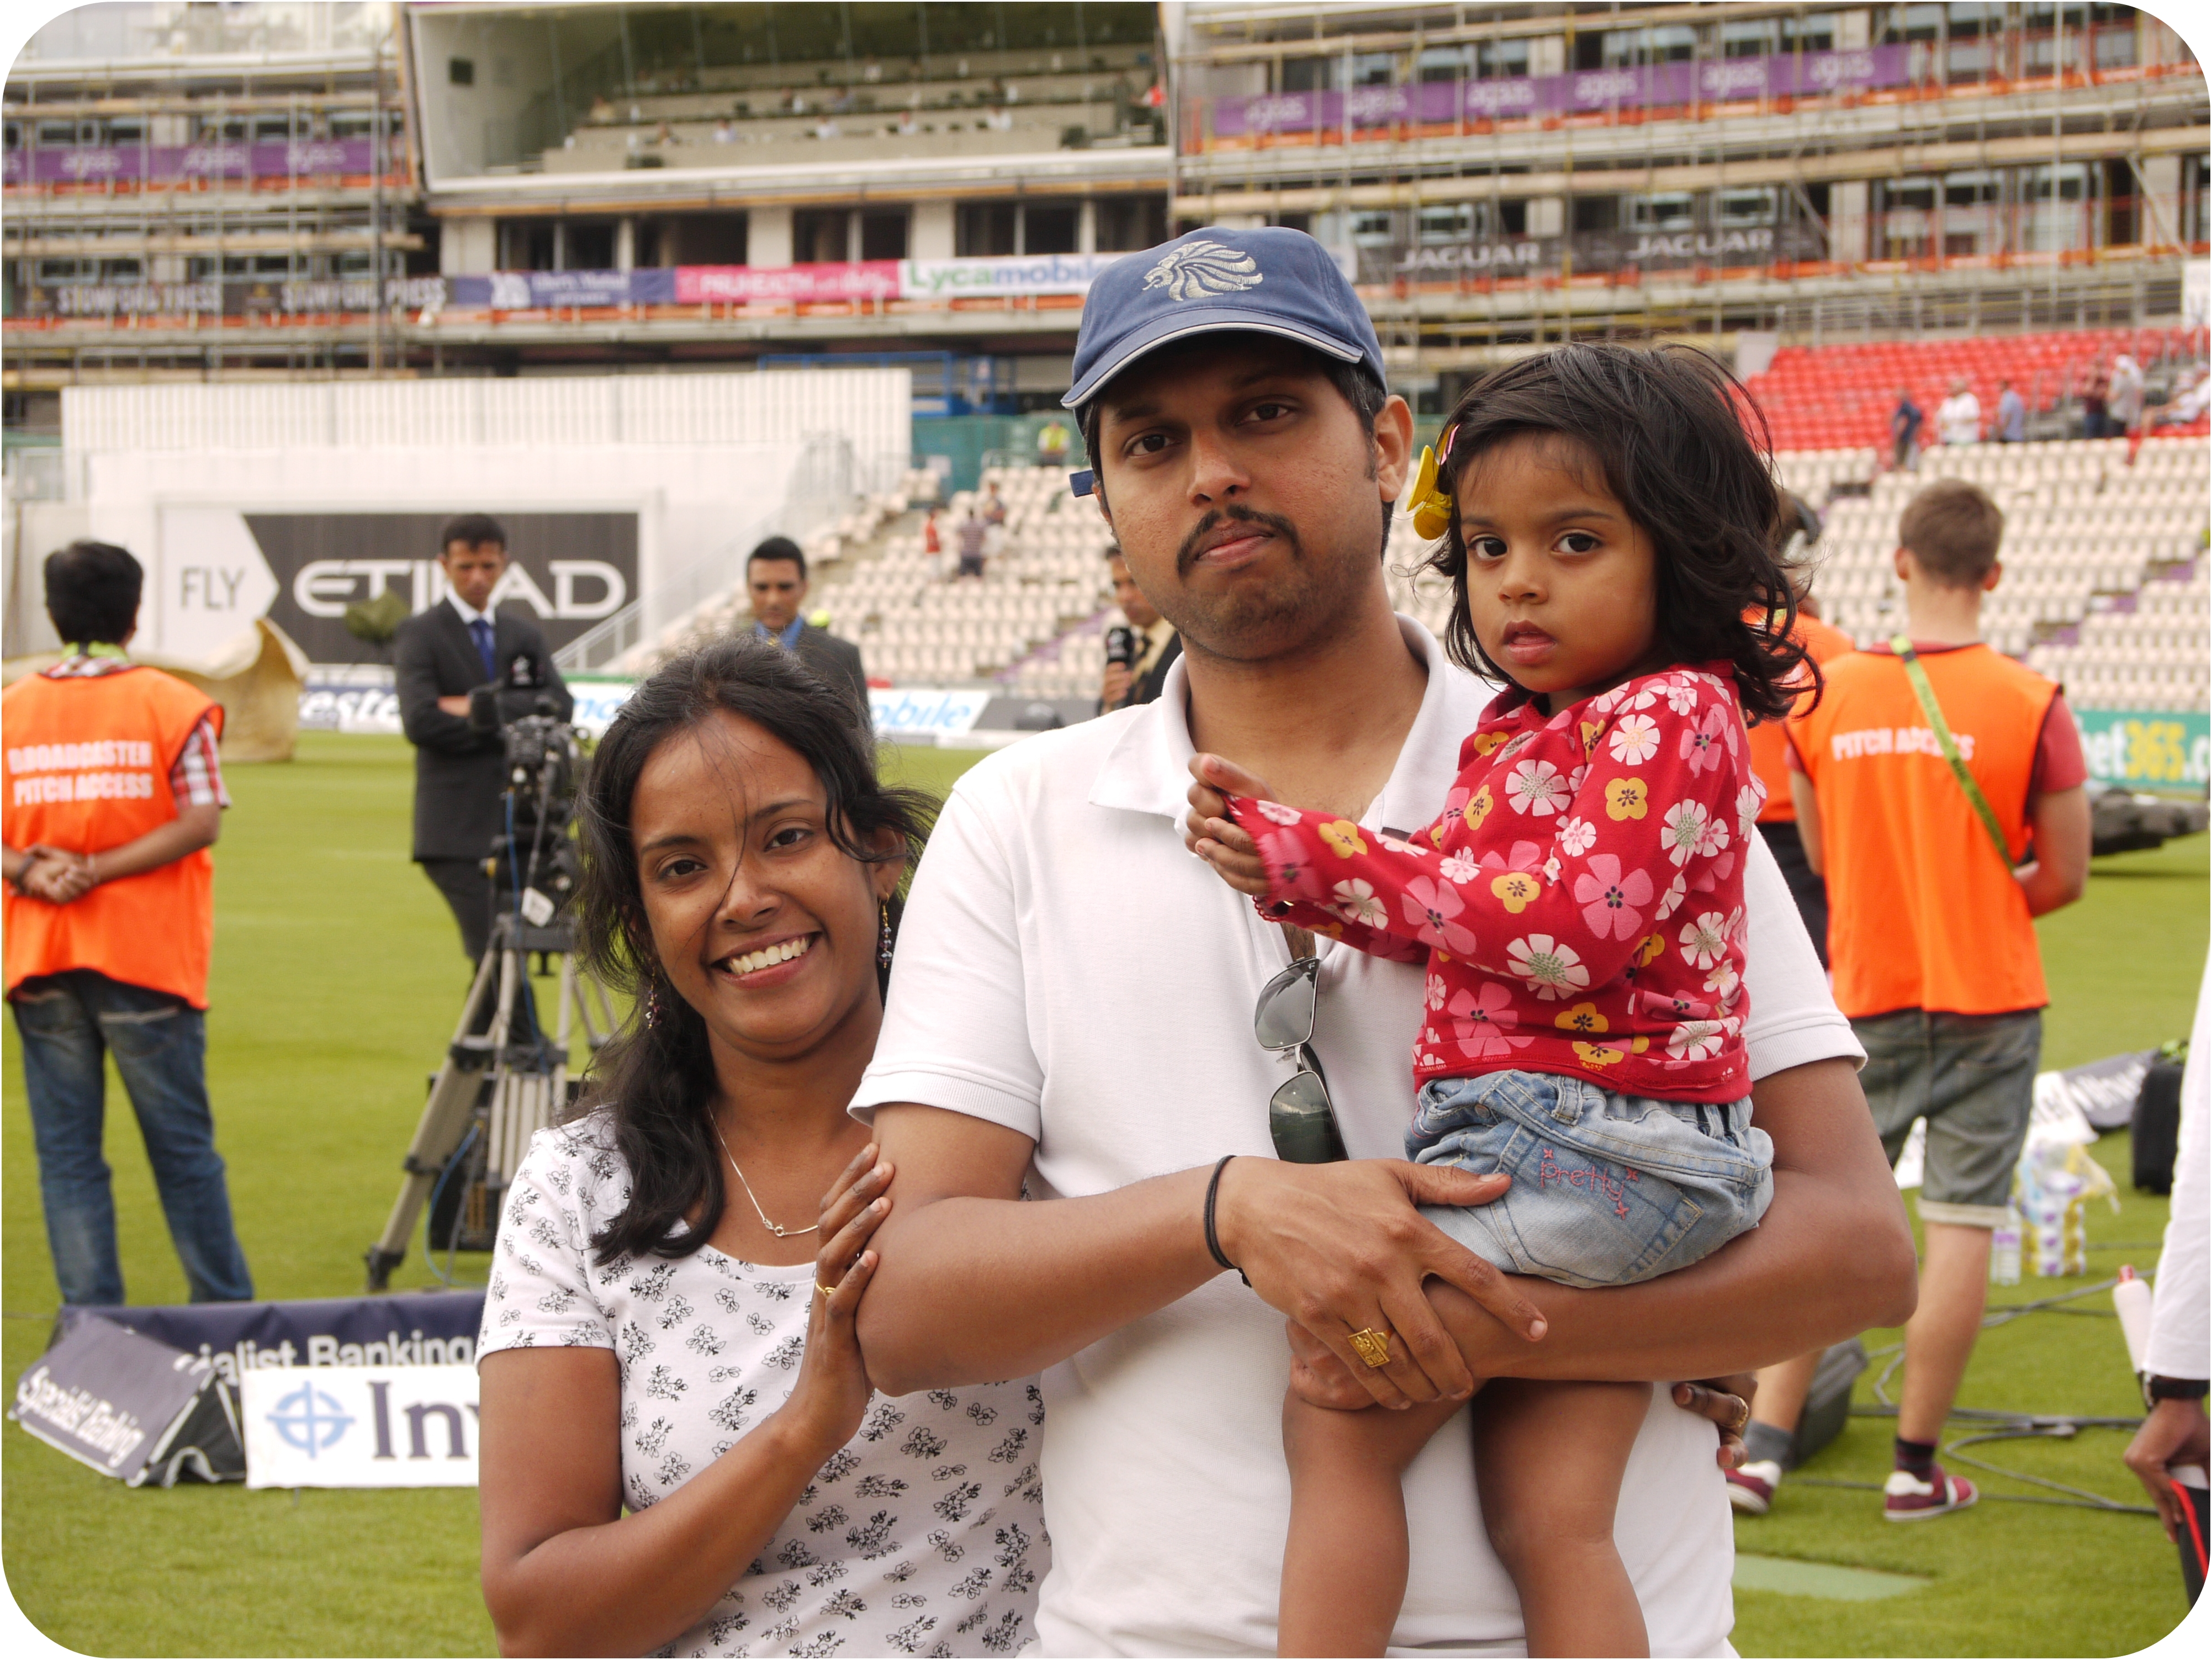 Mridinis First Cricket Match Live - 27 07 2014